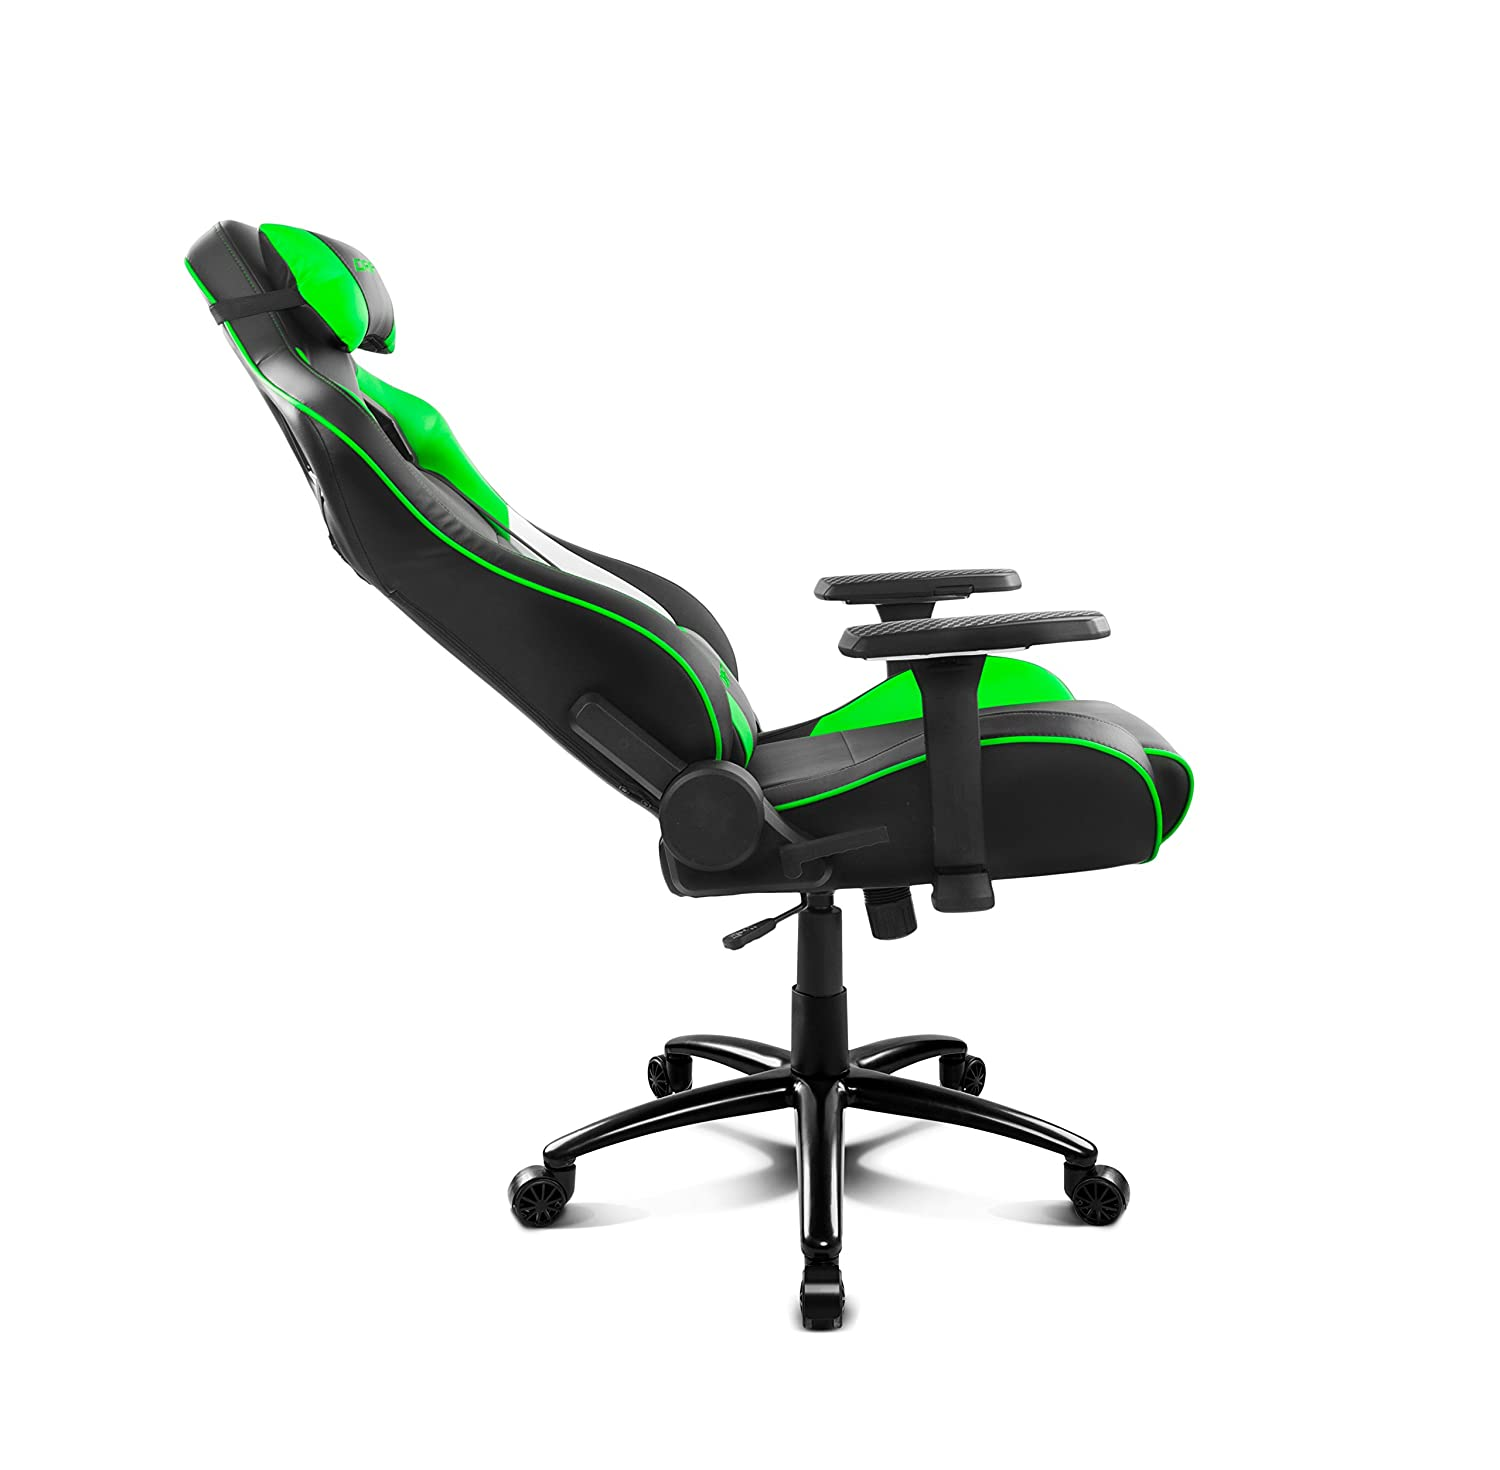 Amazon.com : Drift dr400bg Gaming Chair - Black and Green : Office Products